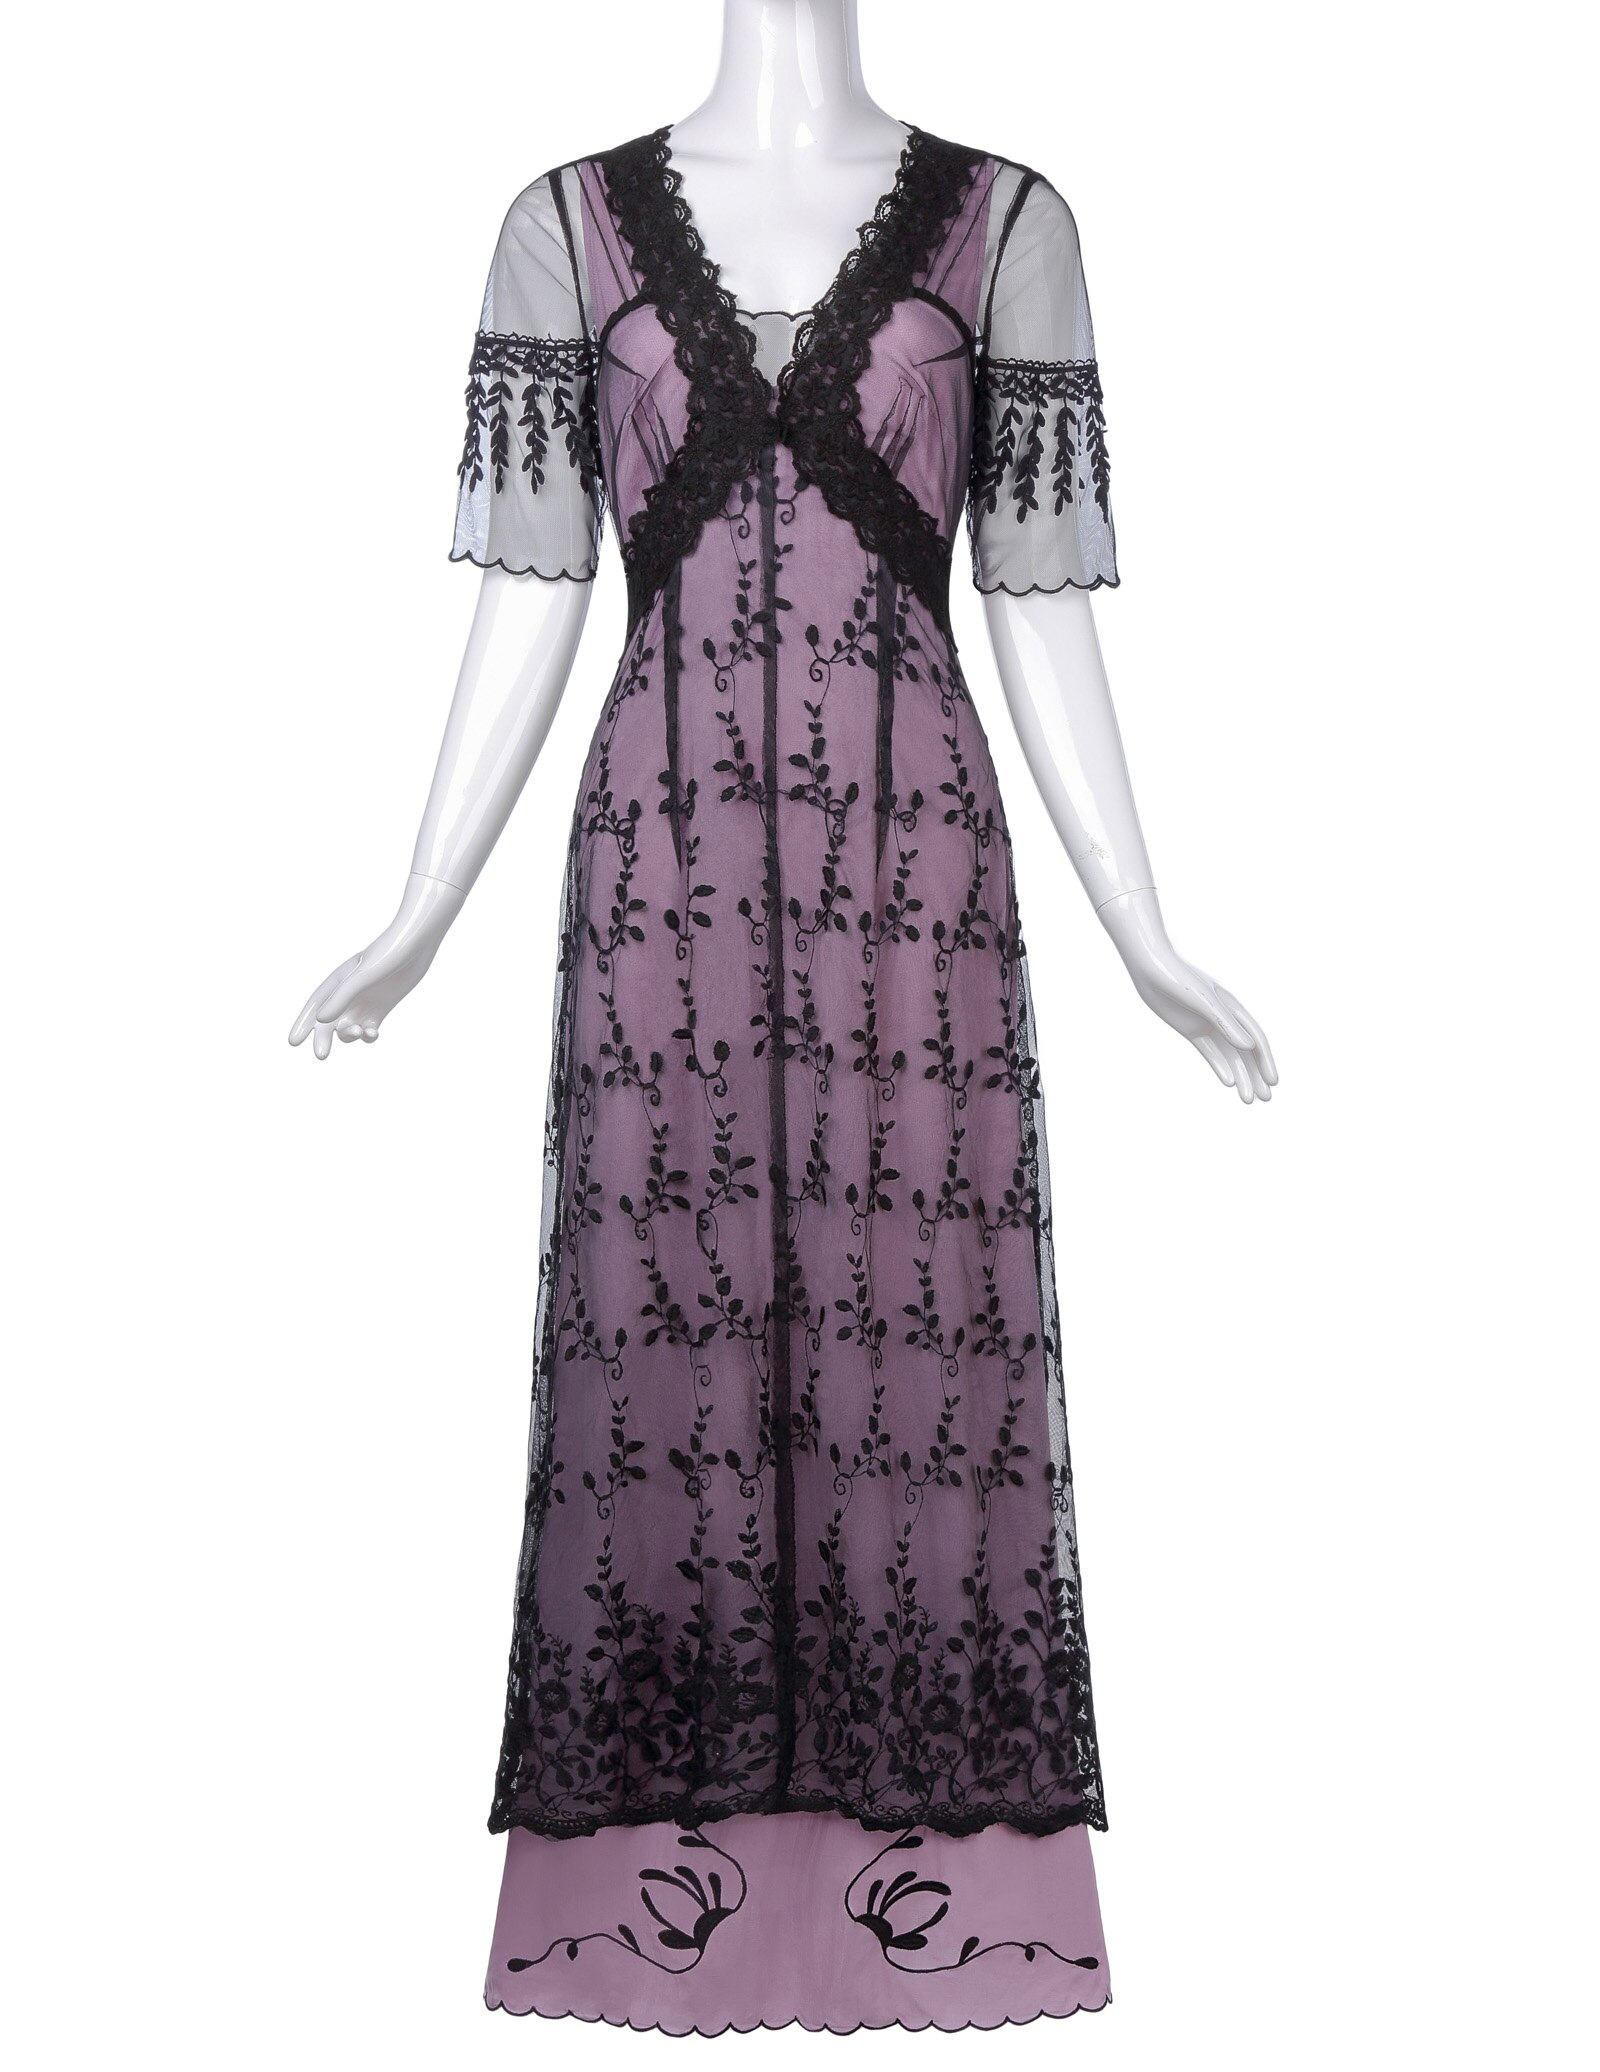 Lolita floral Embroidery Mesh ankle length ladies dress Sexy Women Retro Vintage Victorian Style Half Sleeve V-Neck Lace Dresses 2